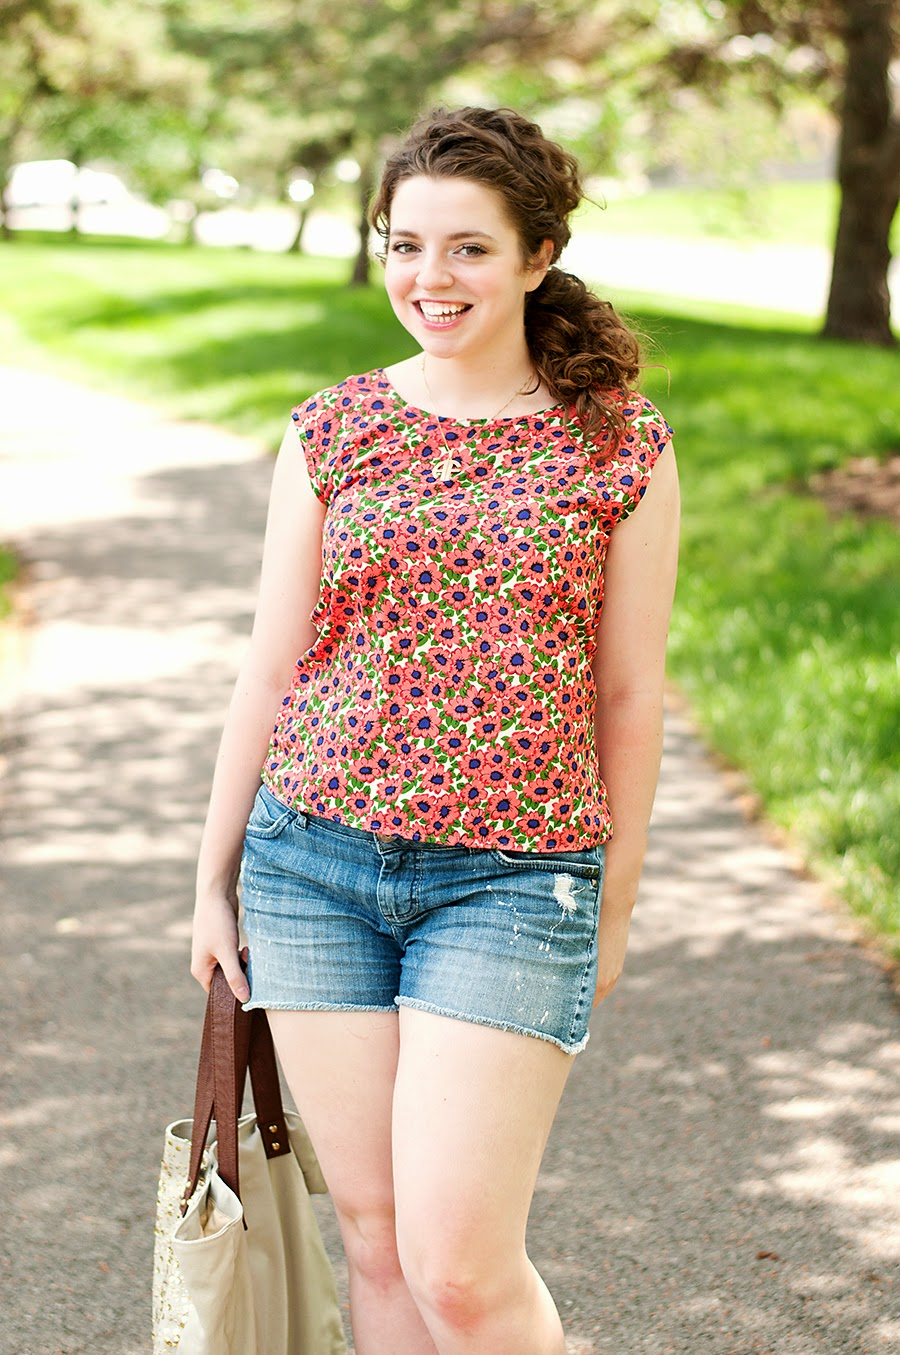 Spring floral top with distressed shorts